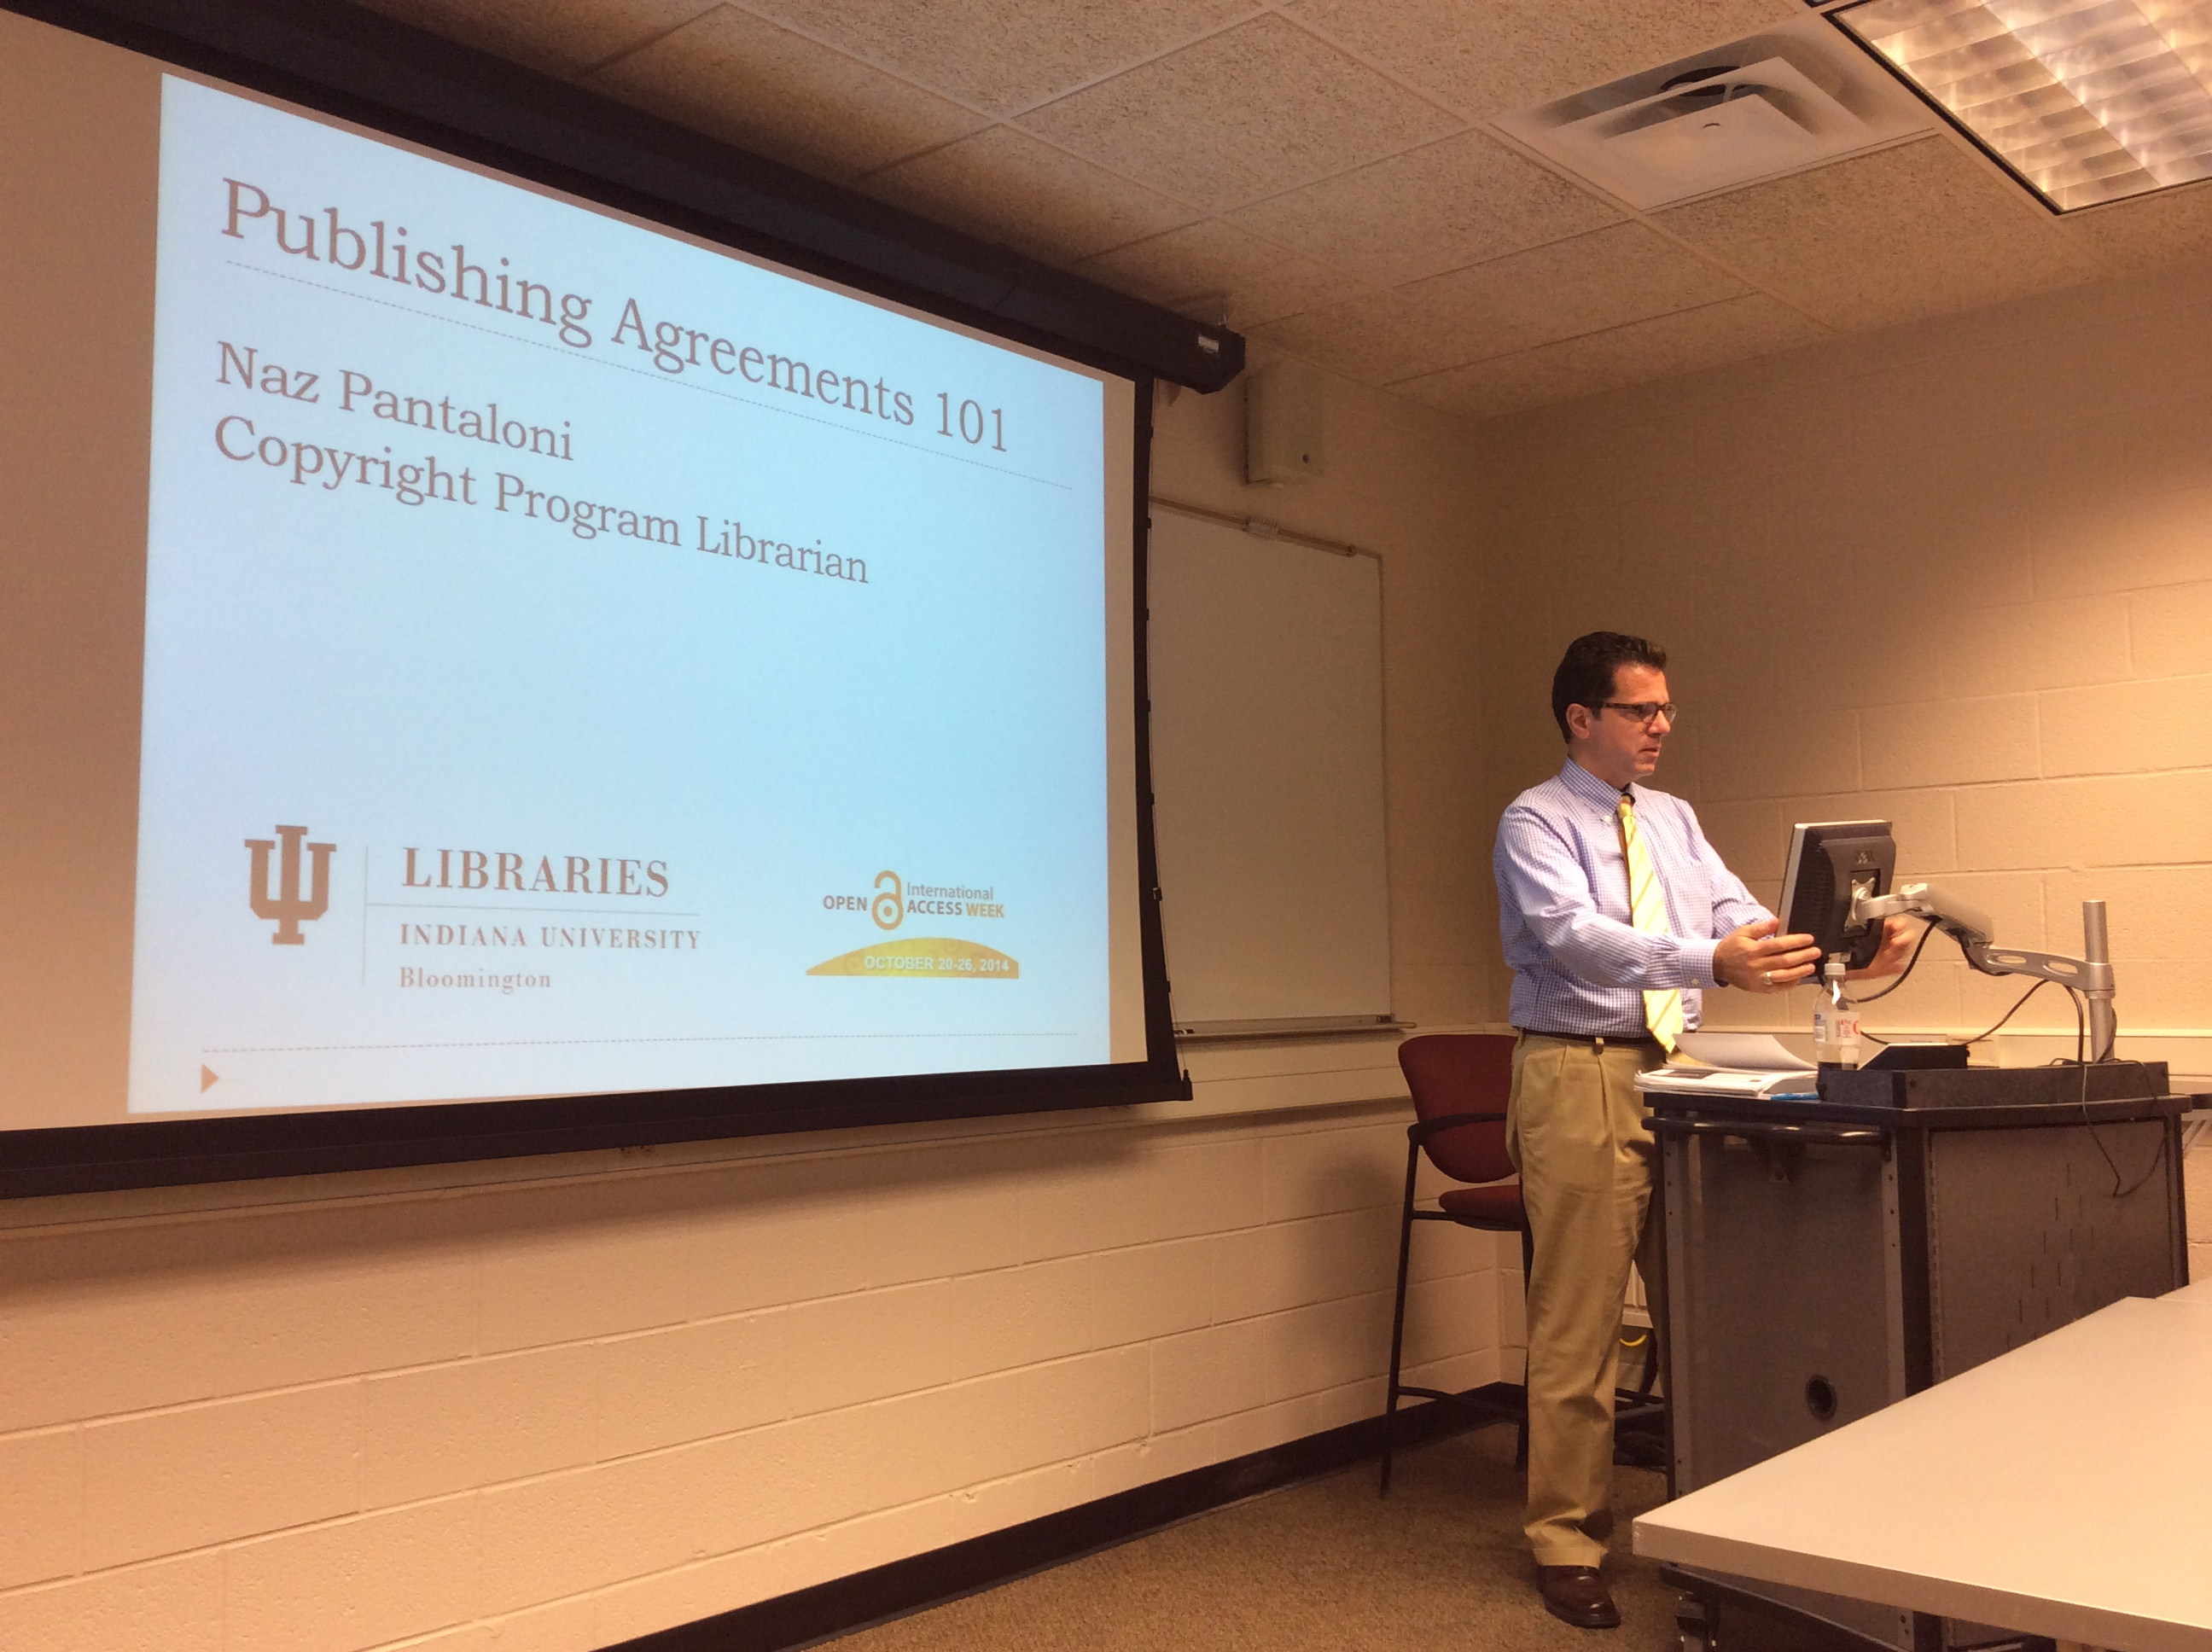 Naz Pantaloni gears up for his presentation on journal publishing agreements.